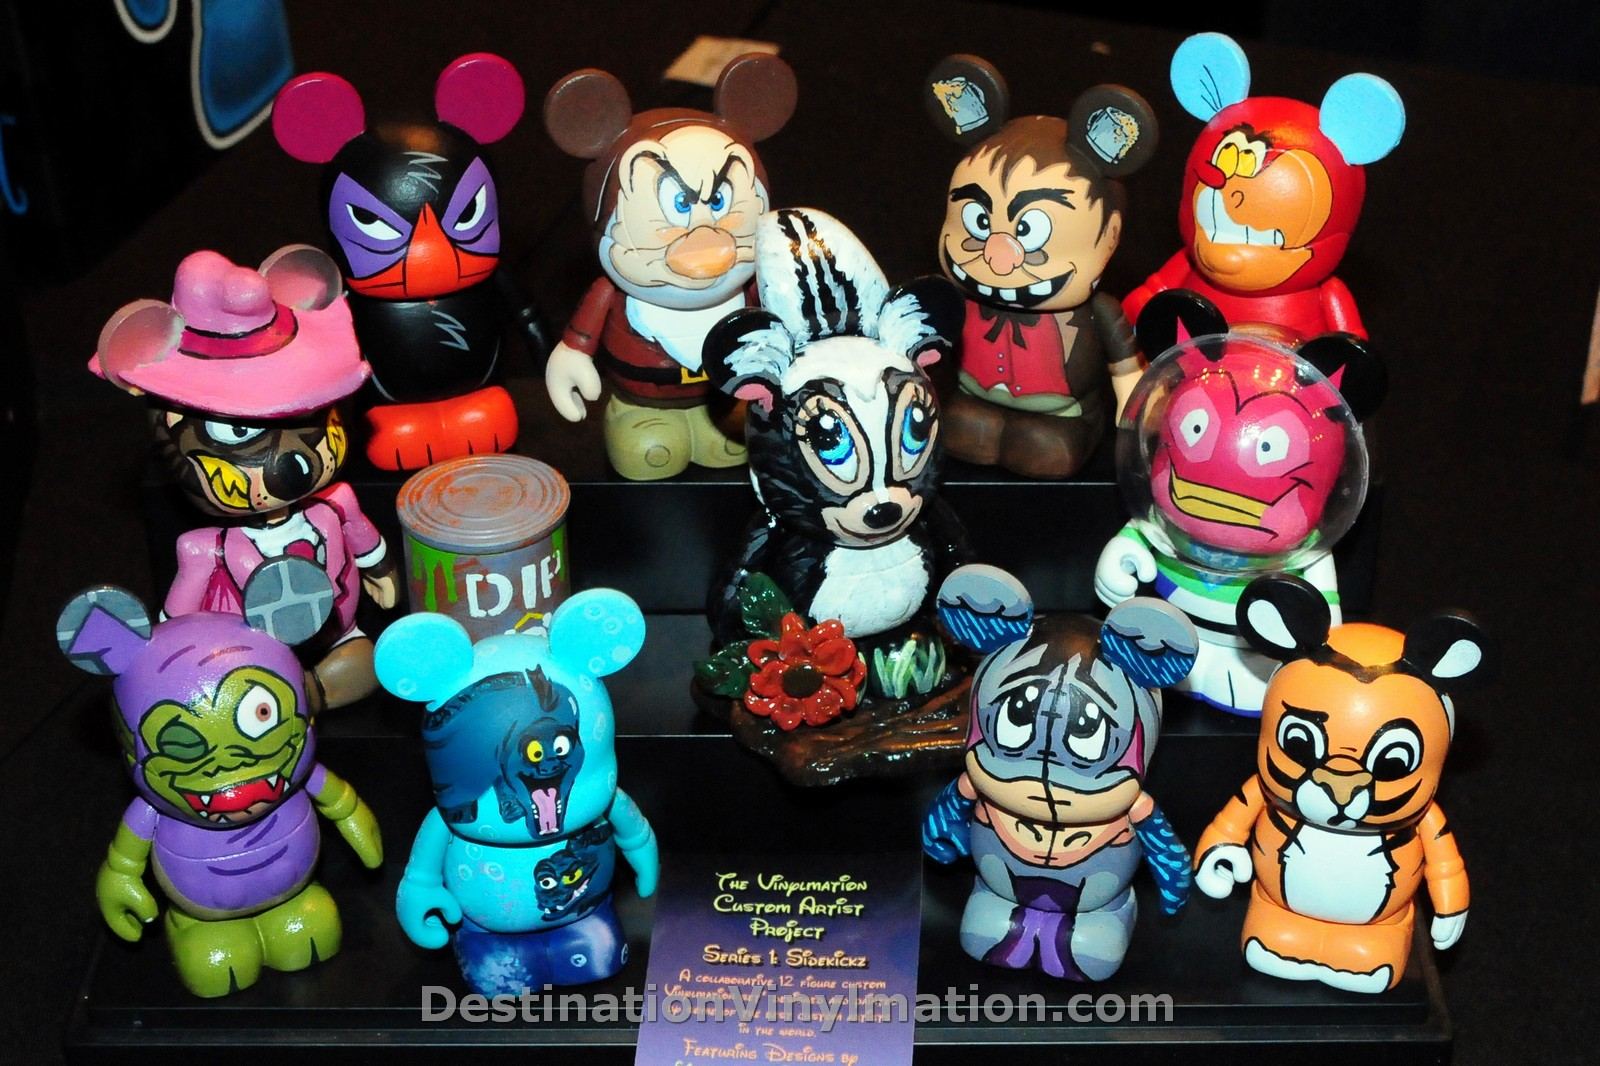 Destination Vinylmation Spotlight On The Custom Artist